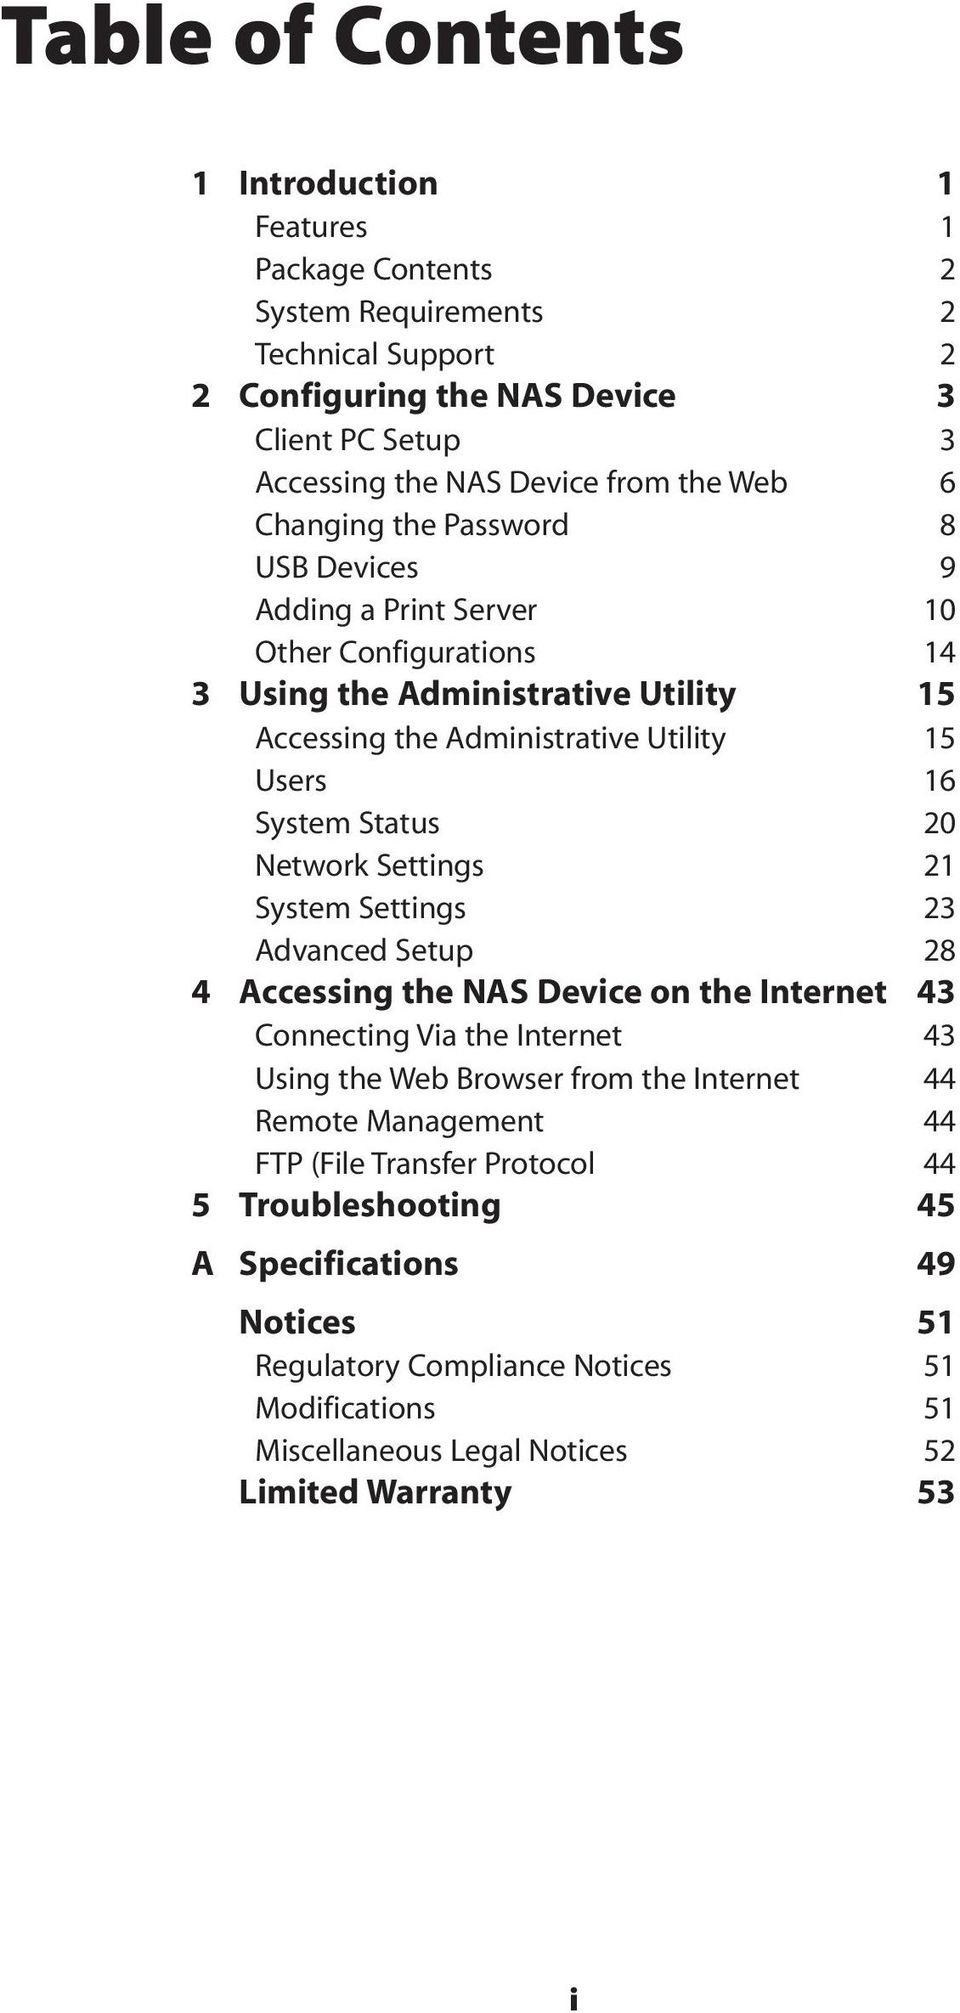 Status 20 Network Settings 21 System Settings 23 Advanced Setup 28 4 Accessing the NAS Device on the Internet 43 Connecting Via the Internet 43 Using the Web Browser from the Internet 44